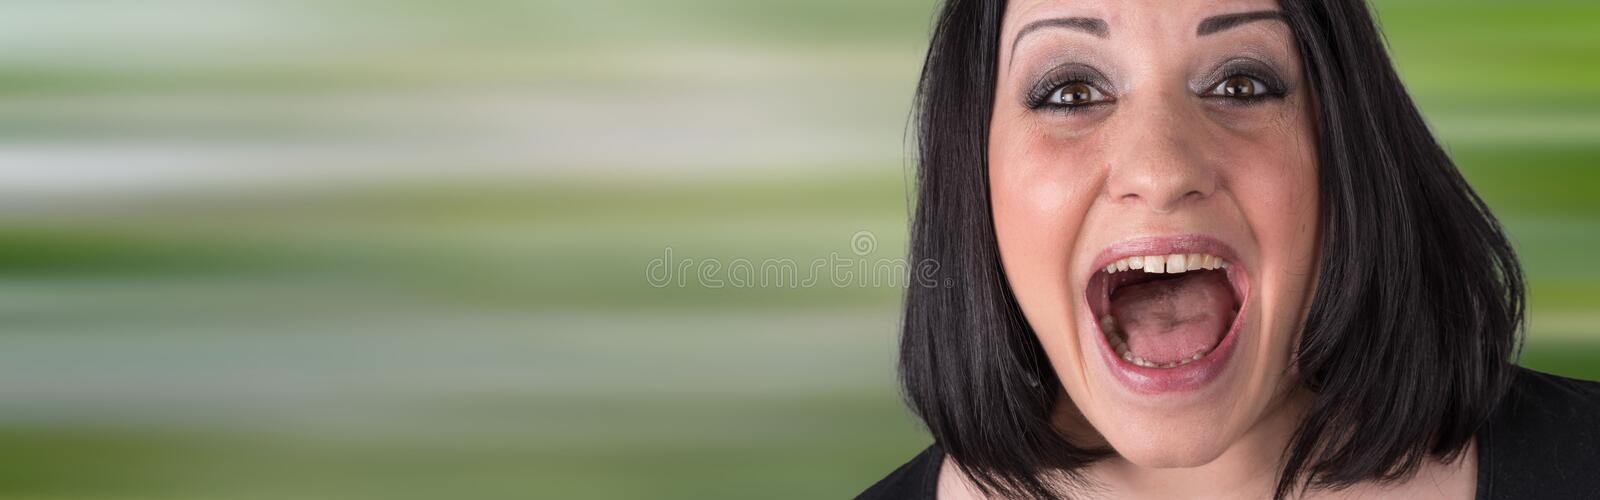 Portrait of a scared young woman royalty free stock image